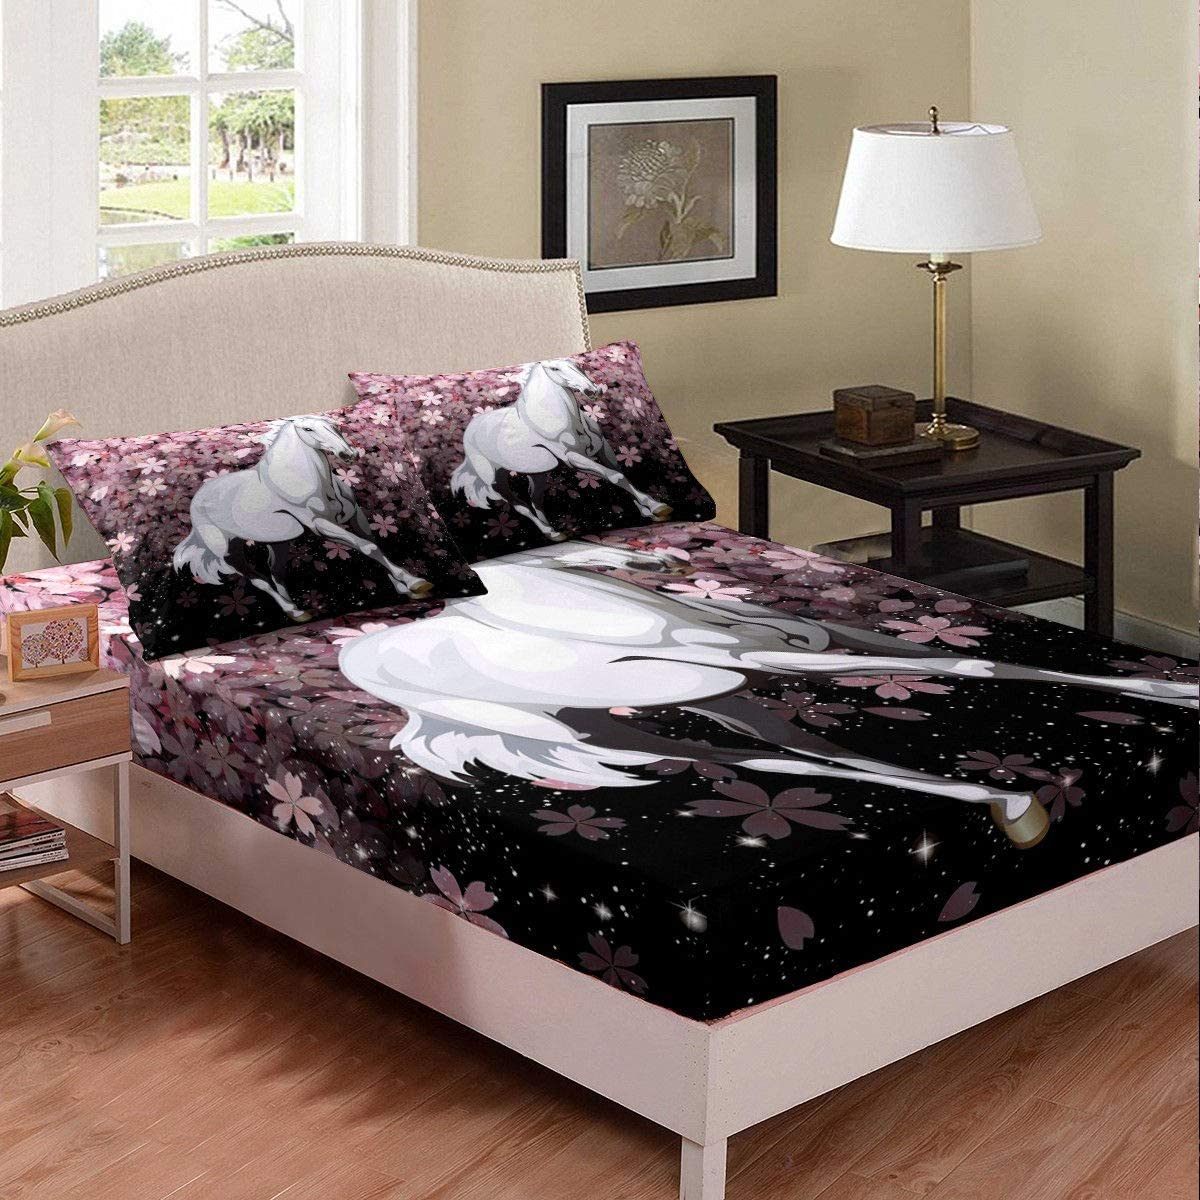 Girl Cherry Blossoms Fitted Sheet, Japanese Style Bedding Sets Twin Size, Kids Starry Sky Cherry Flower White Horse Printed Sheet Set, Romantic Theme Bed Cover and 1 Pillowcase, Pink Black